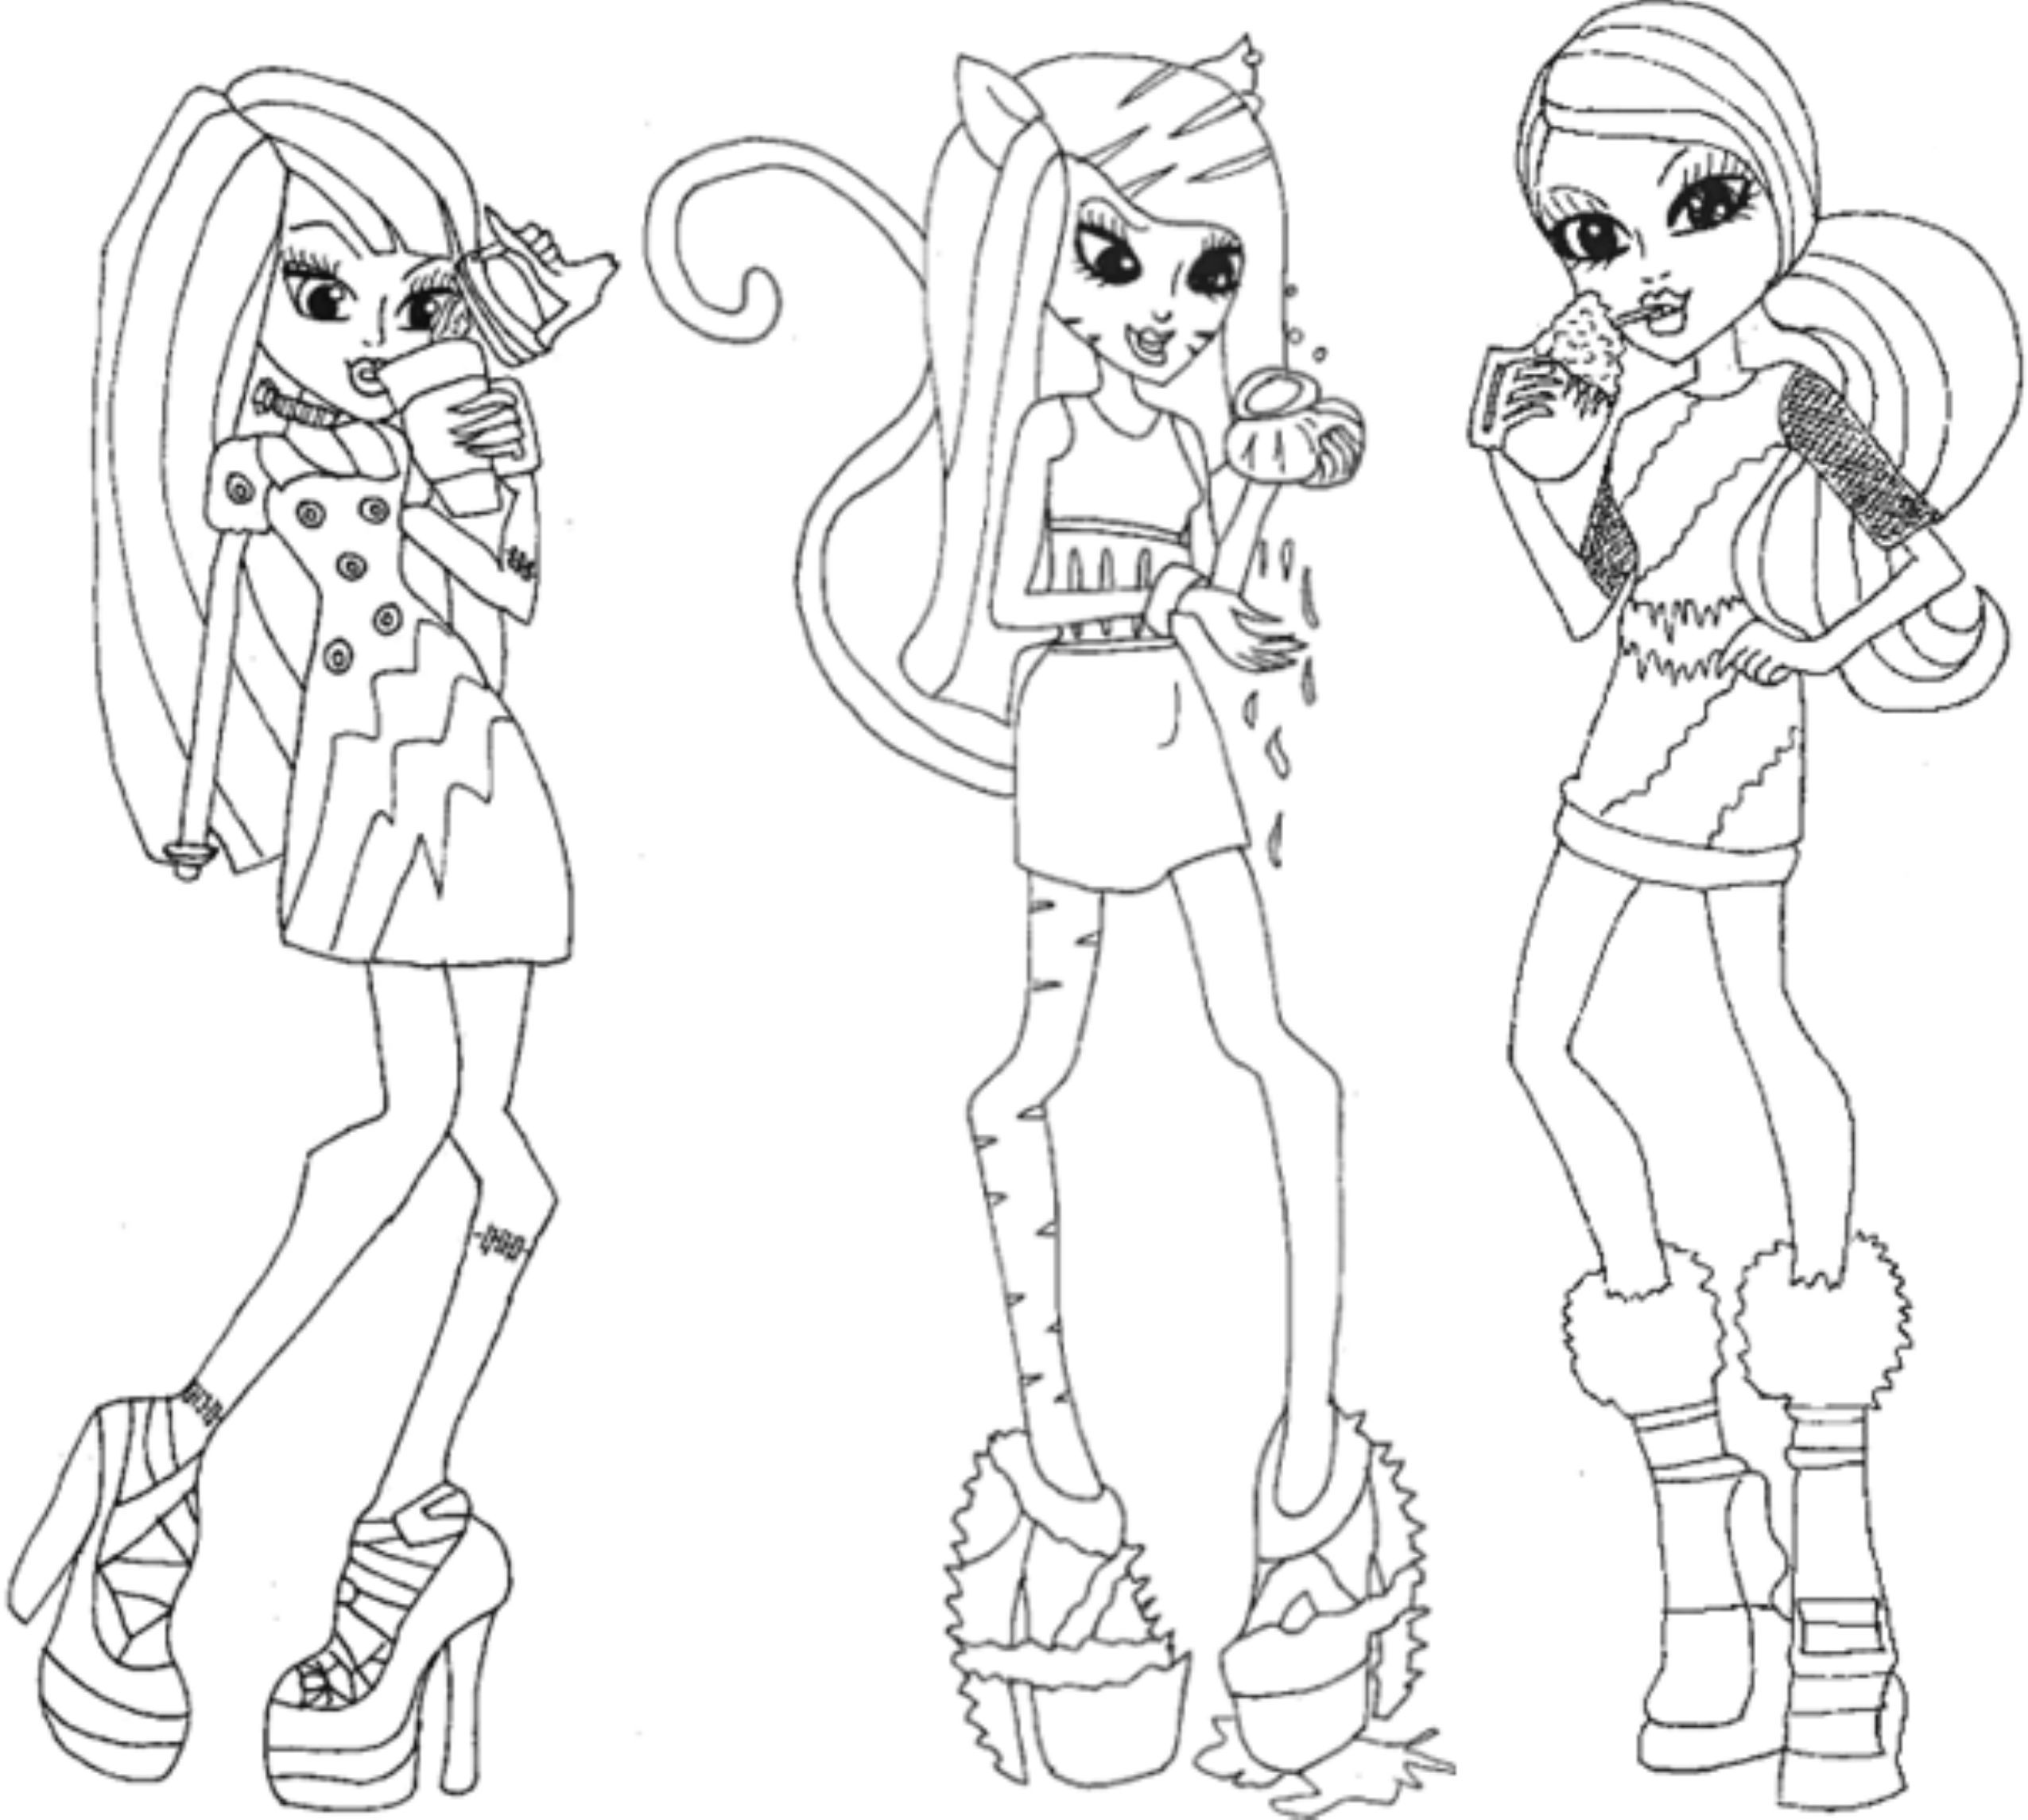 in addition  furthermore  moreover cartoon cheerleading coloring pages 1 further il 570xN 687878735 kgch besides how to draw a zombie likewise  moreover chunk het eten van een cu 4eb3c87fbb4f5 p additionally  moreover 9TpbbRgnc besides . on printable cheerleader coloring pages